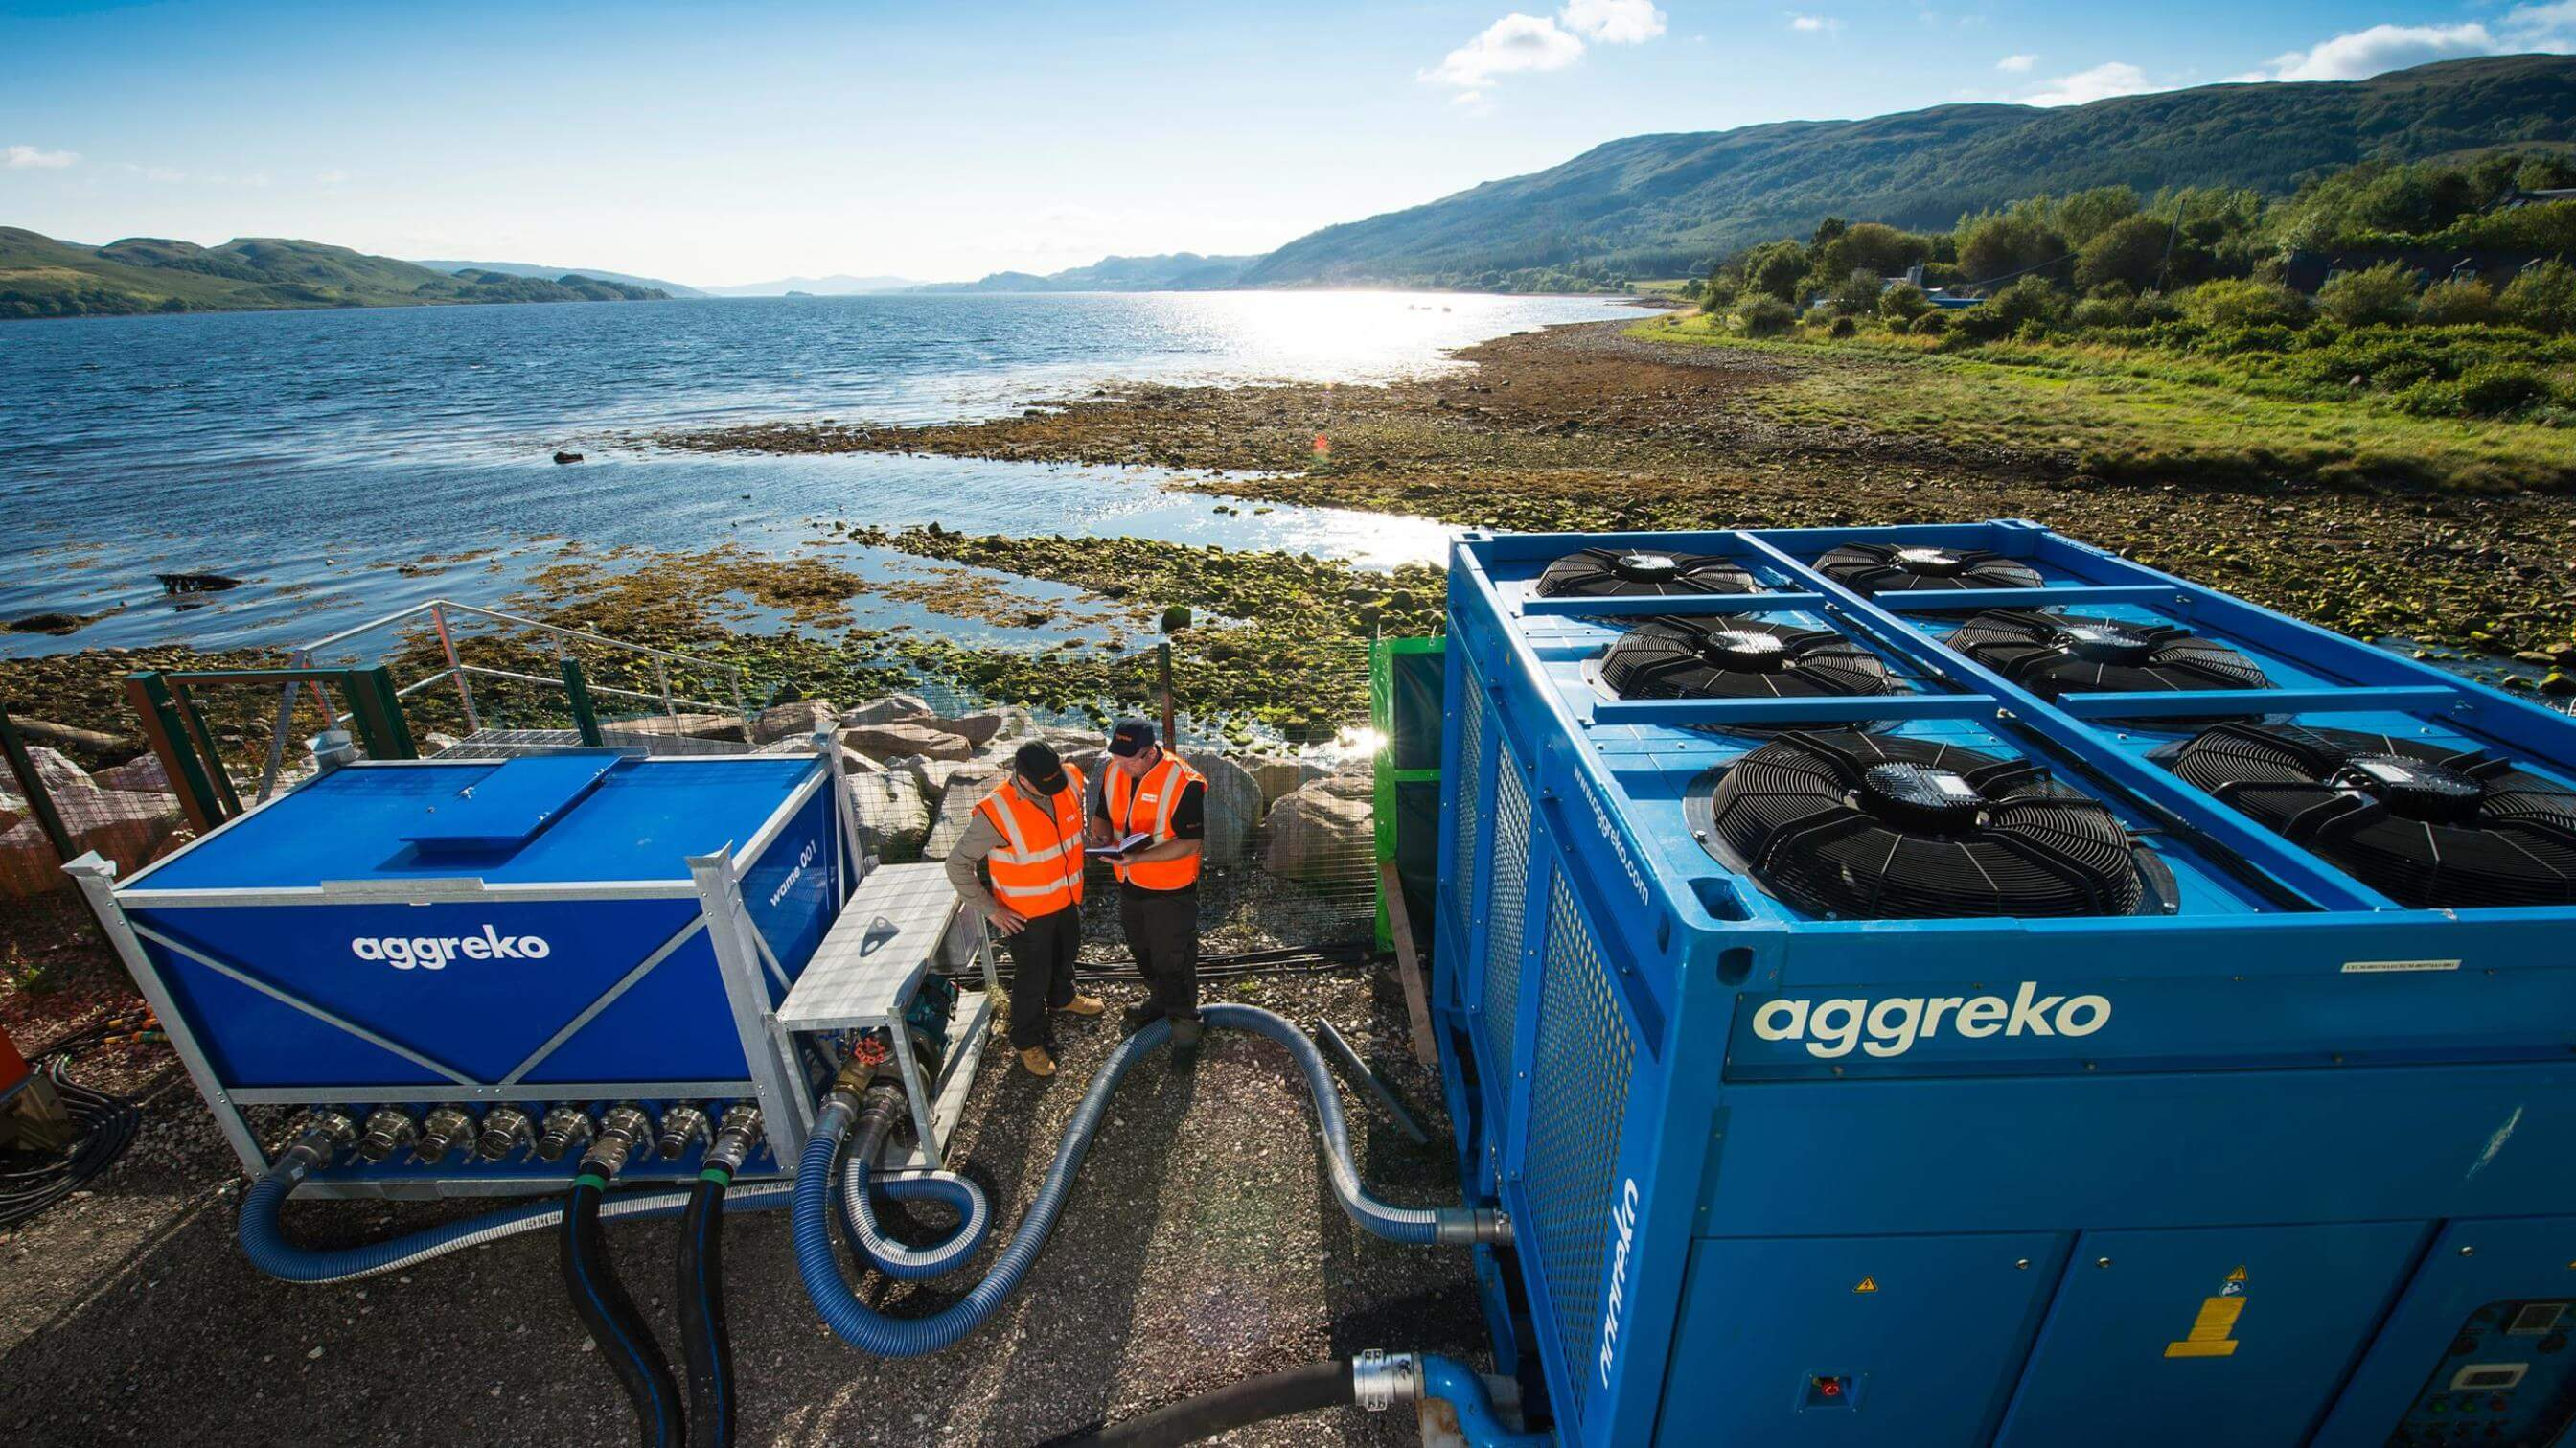 2017 02 salmon hatchery inveraray scotland cooling?la=en US&w=1500&hash=D2BB62242E15D8BD189658AB31B3D5A40DF81D69 industrial rental chillers air and water cooled chillers aggreko aggreko generator wiring diagram at n-0.co